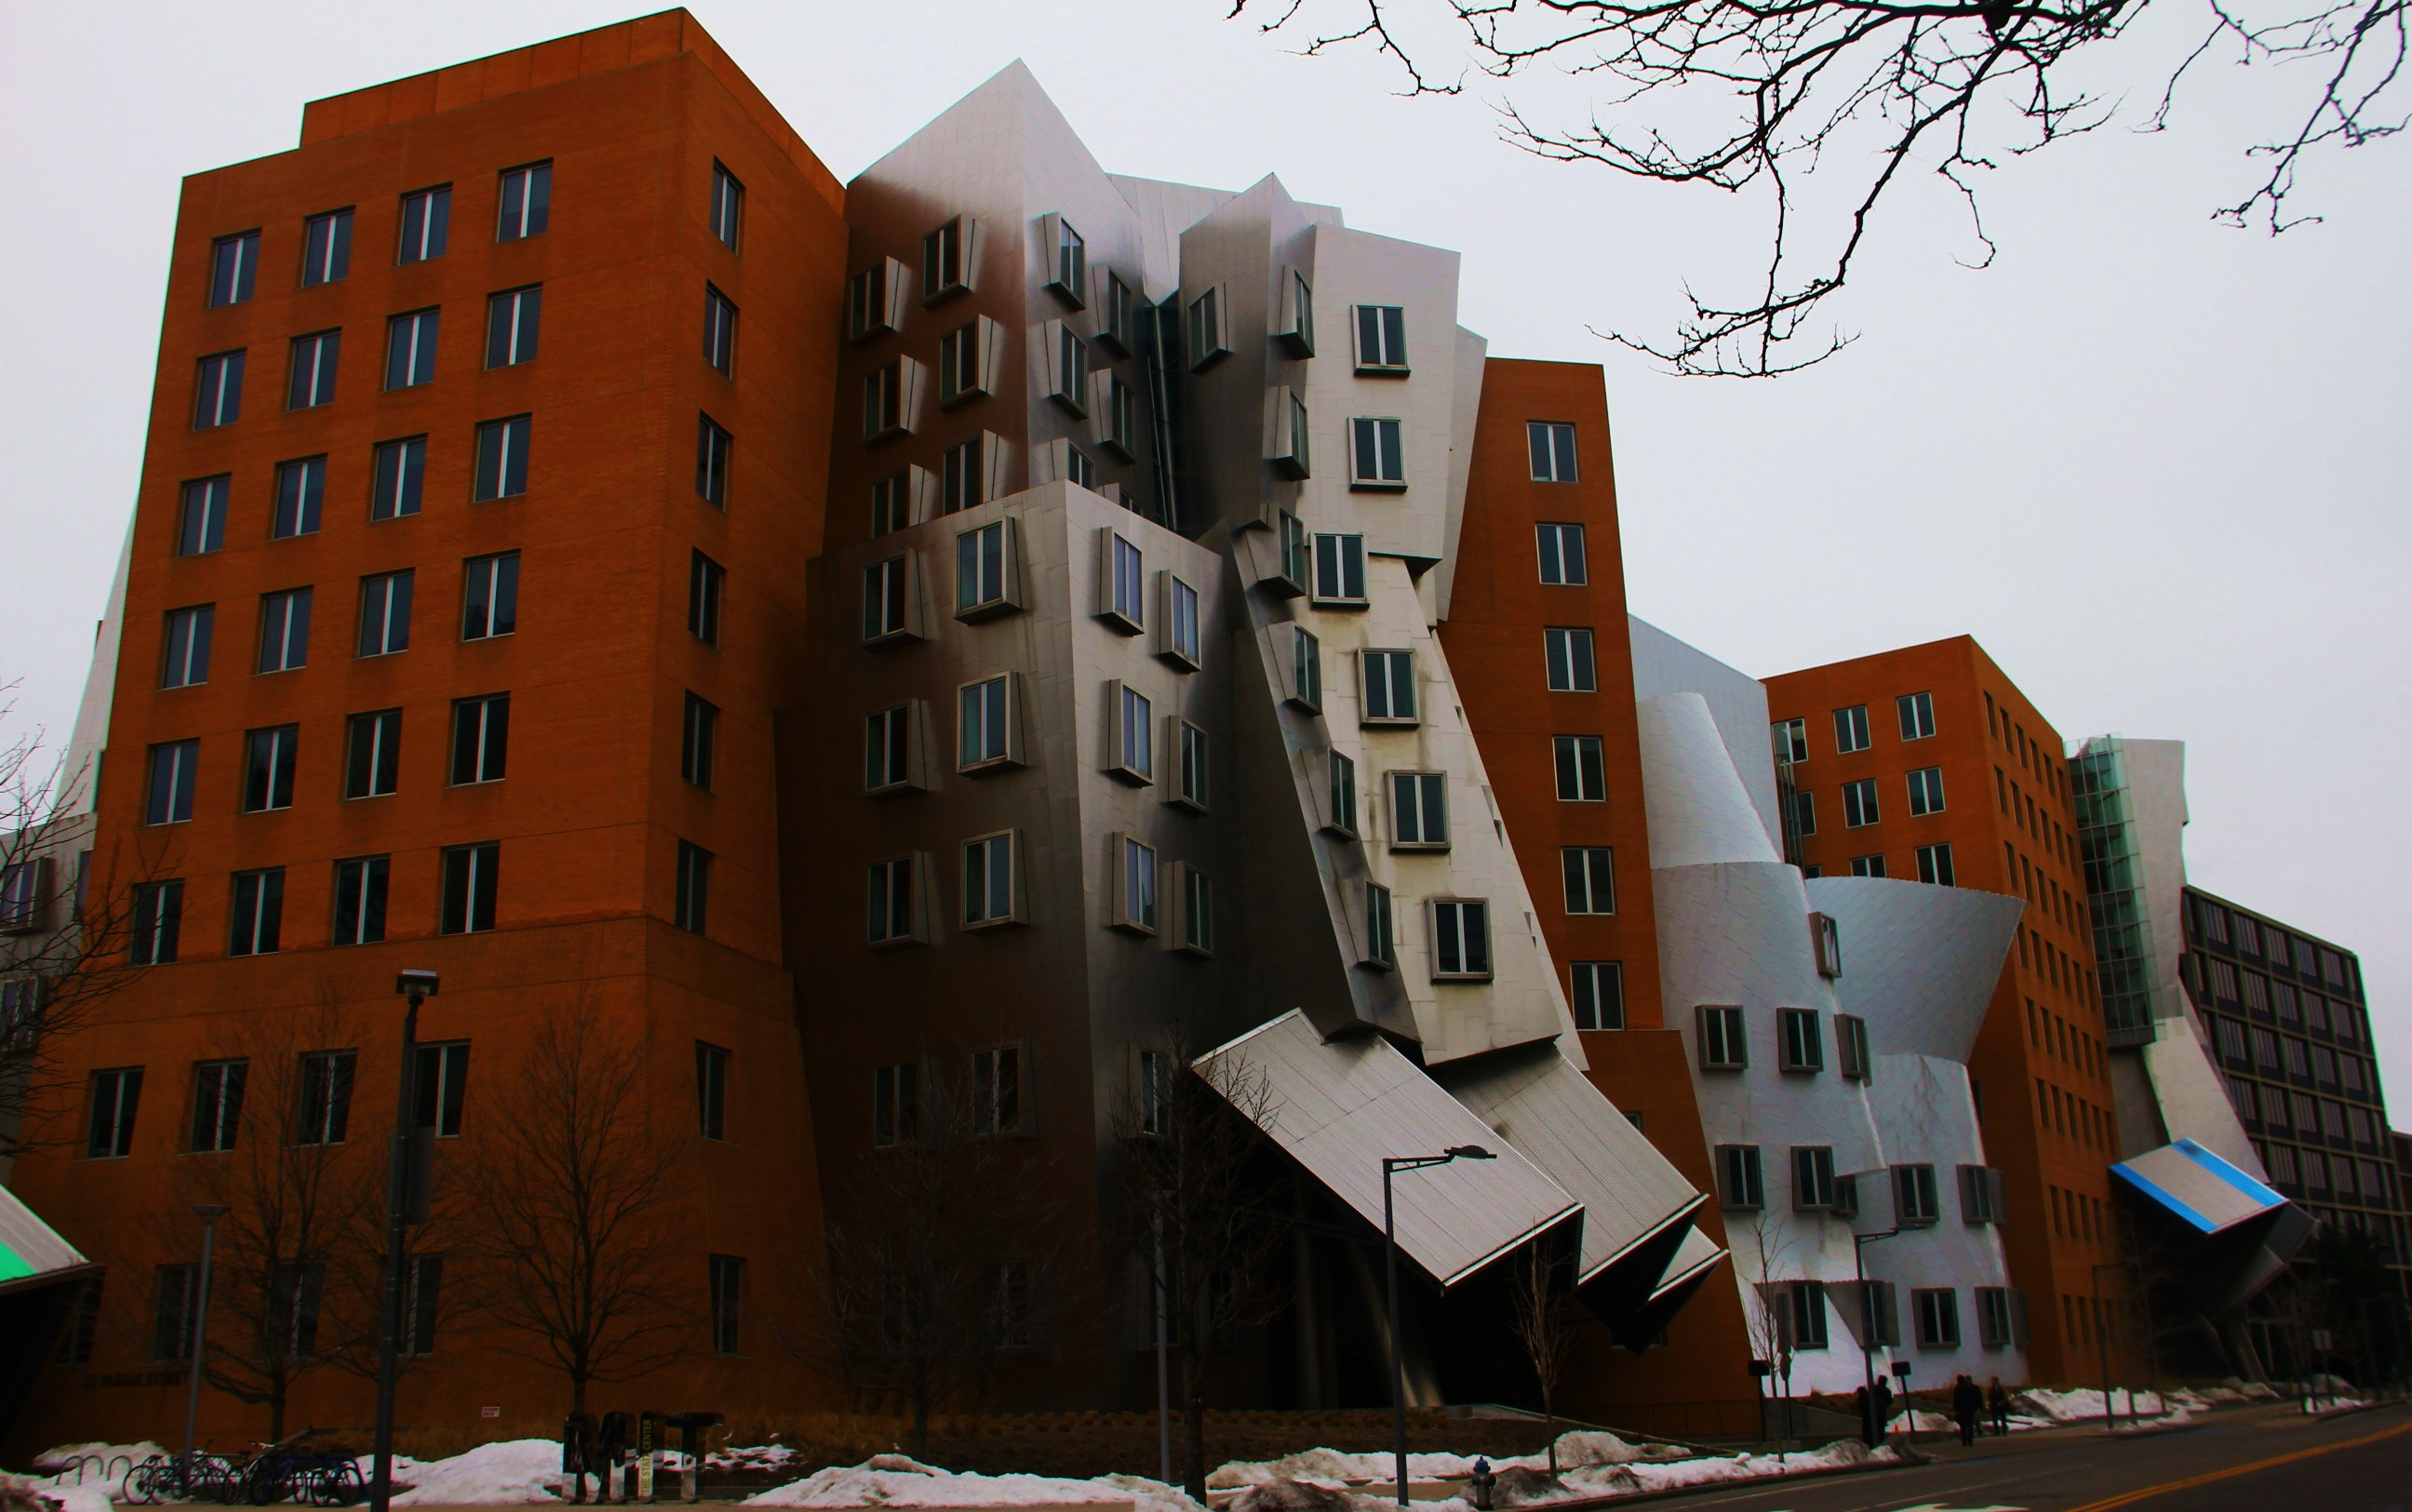 Boston Architecture Frank Gehry At Mit Tokidoki Nomad